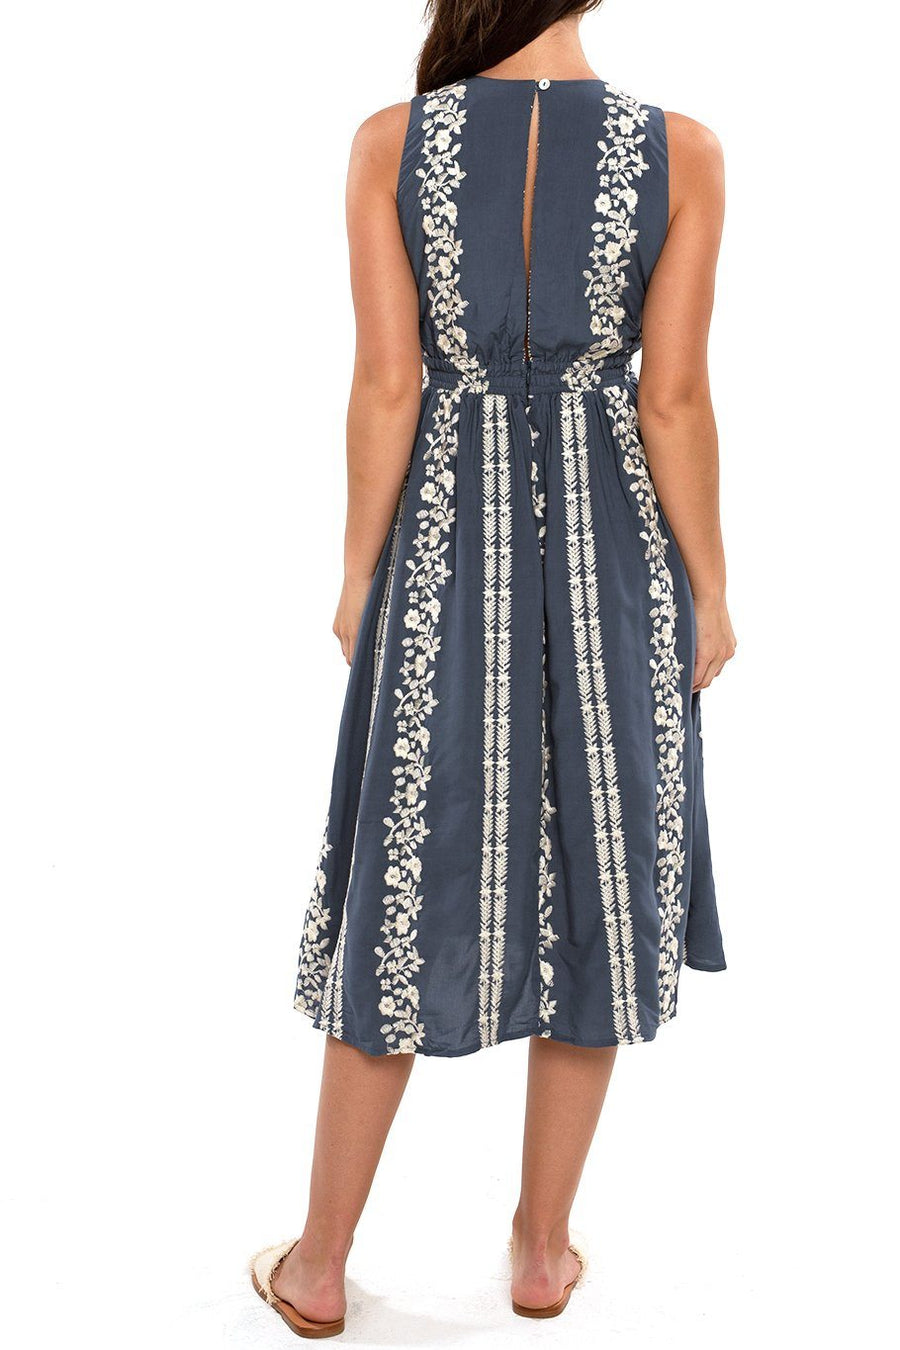 Magnolia Midi Dress - Mirage Embroidered